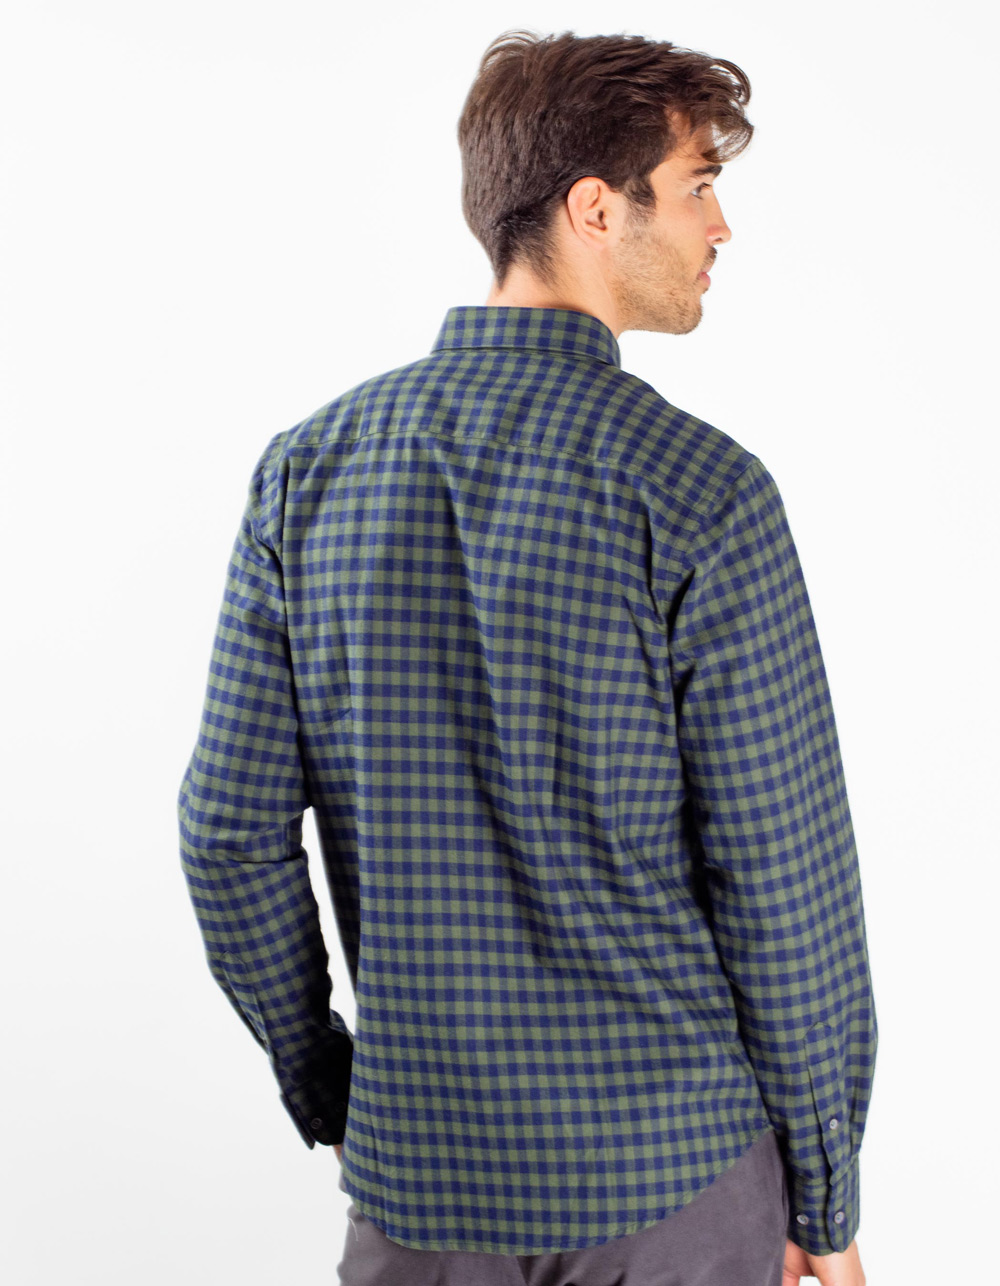 Camisa de cuadros verde - Backside